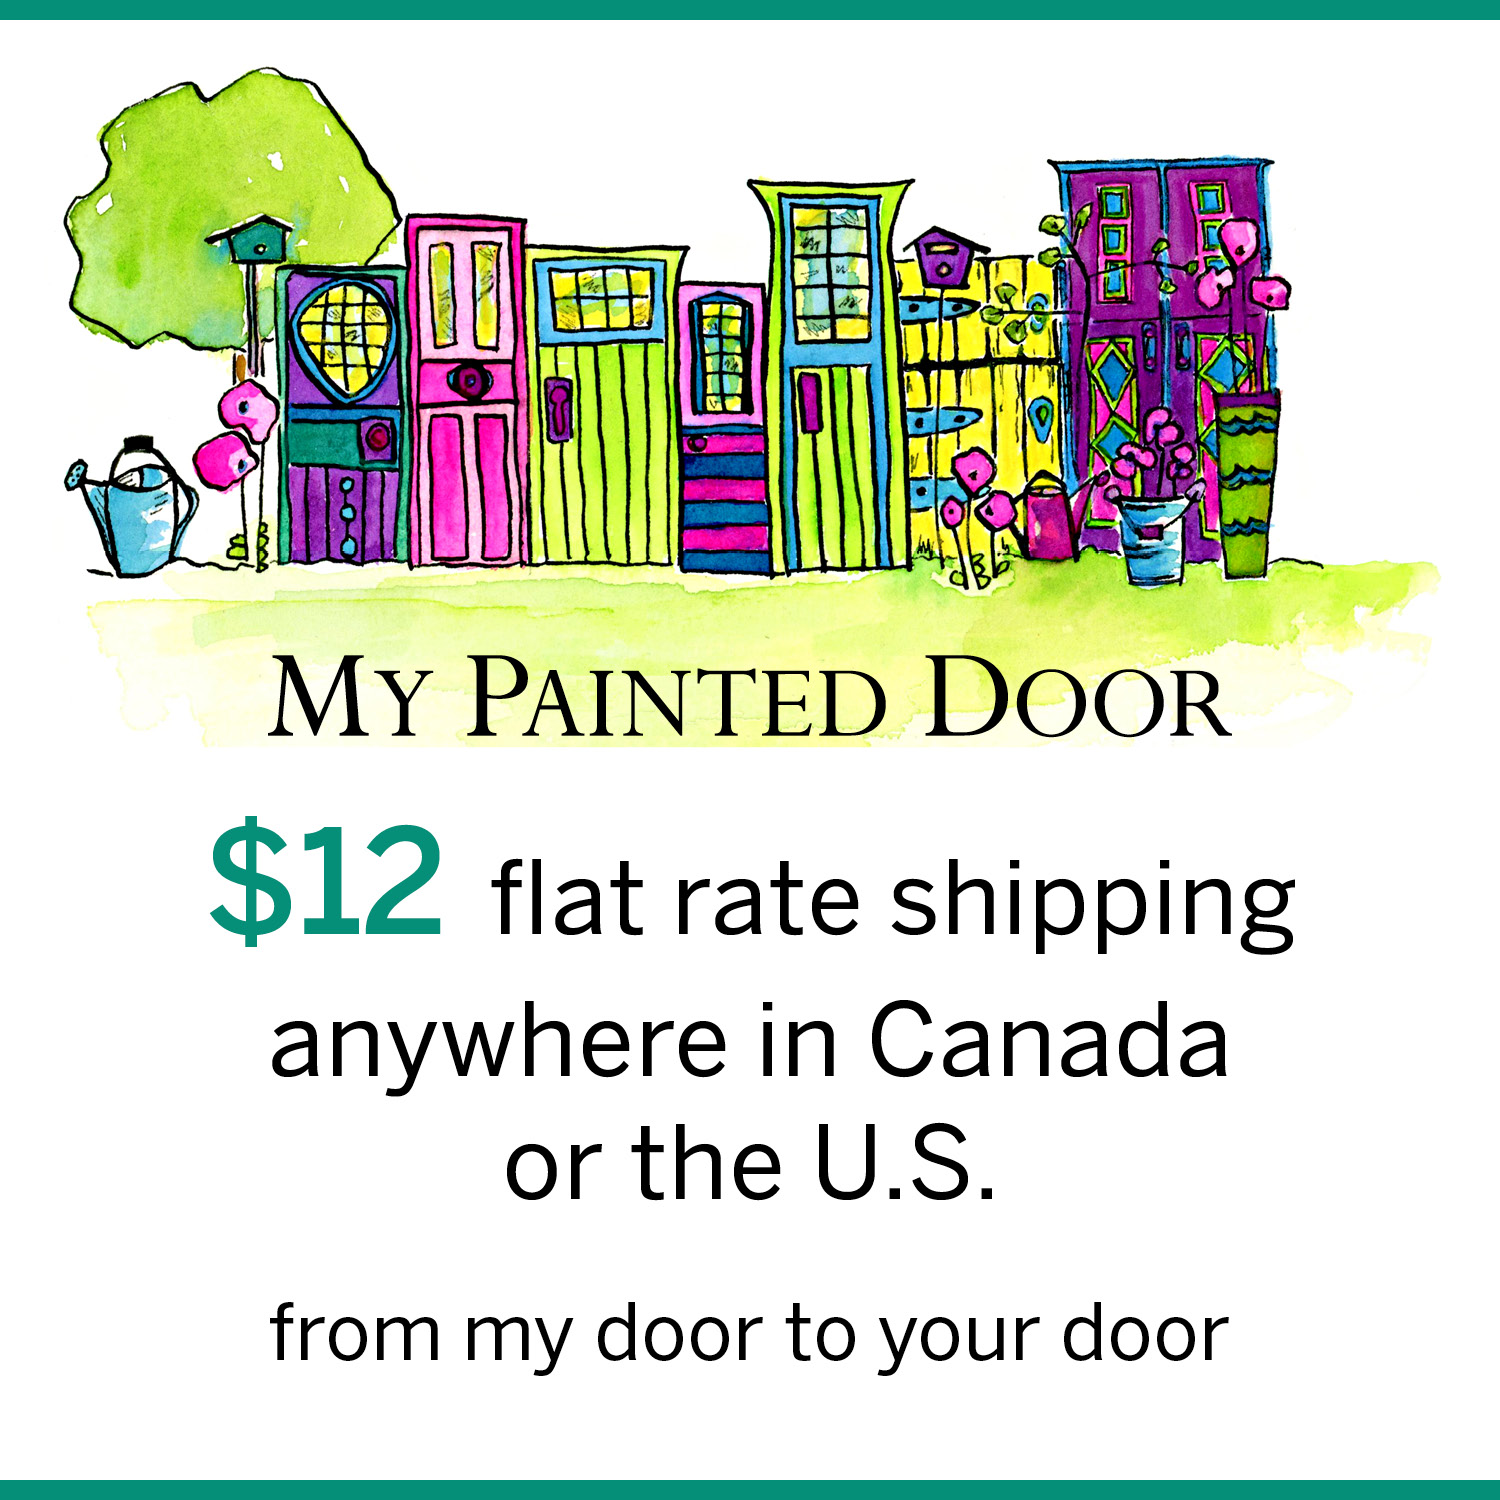 Buy Fusion Mineral Paint and milk paint online at My Painted Door Shop. $12 flat rate shipping anywhere in Canada or the U.S.